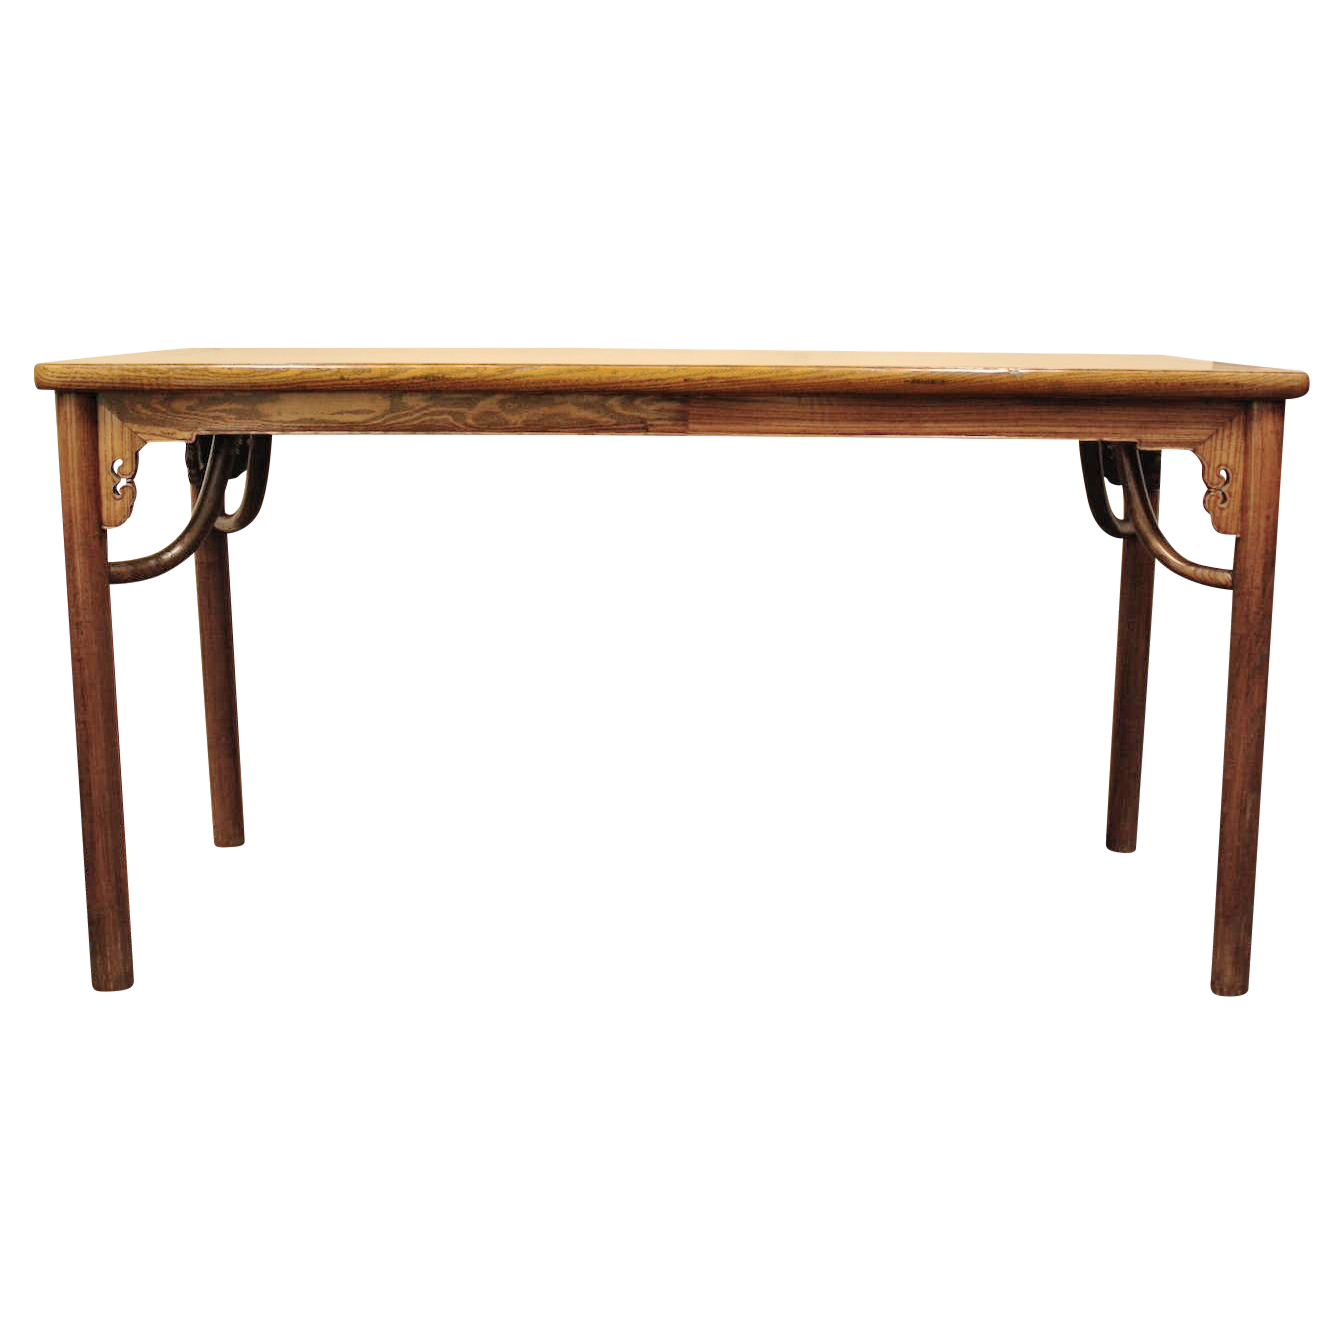 Mcguire asian antique chinese console table chairish geotapseo Gallery